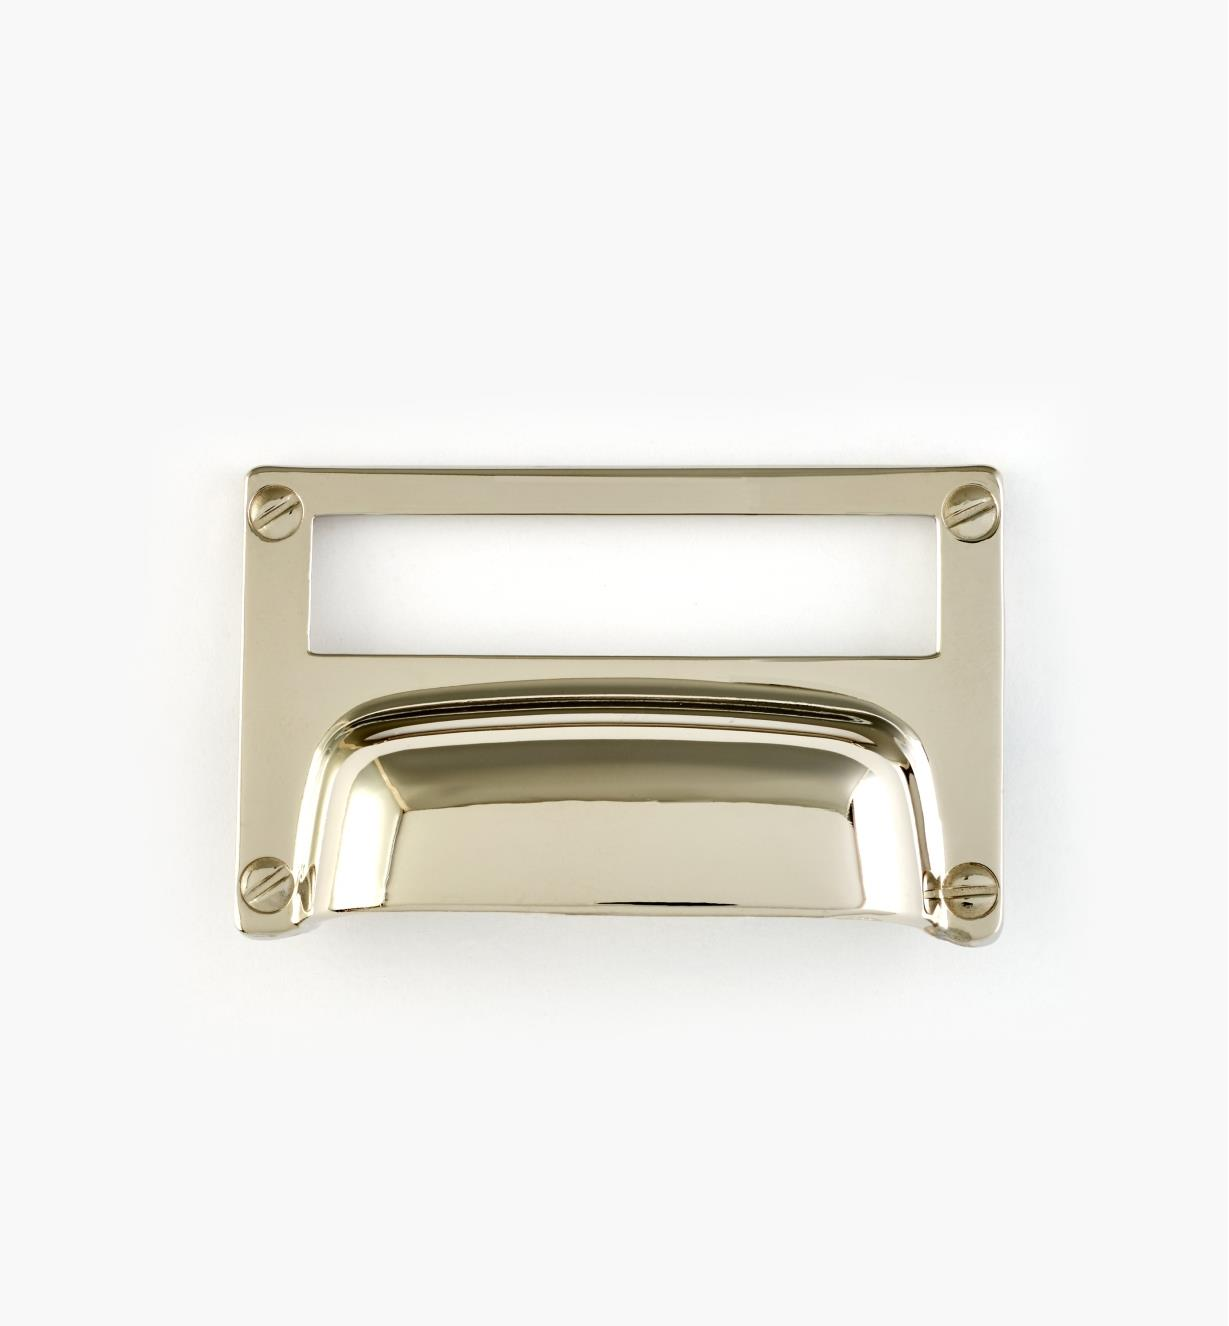 01A5765 - Chrome Plated Zamak Card Frame Pull